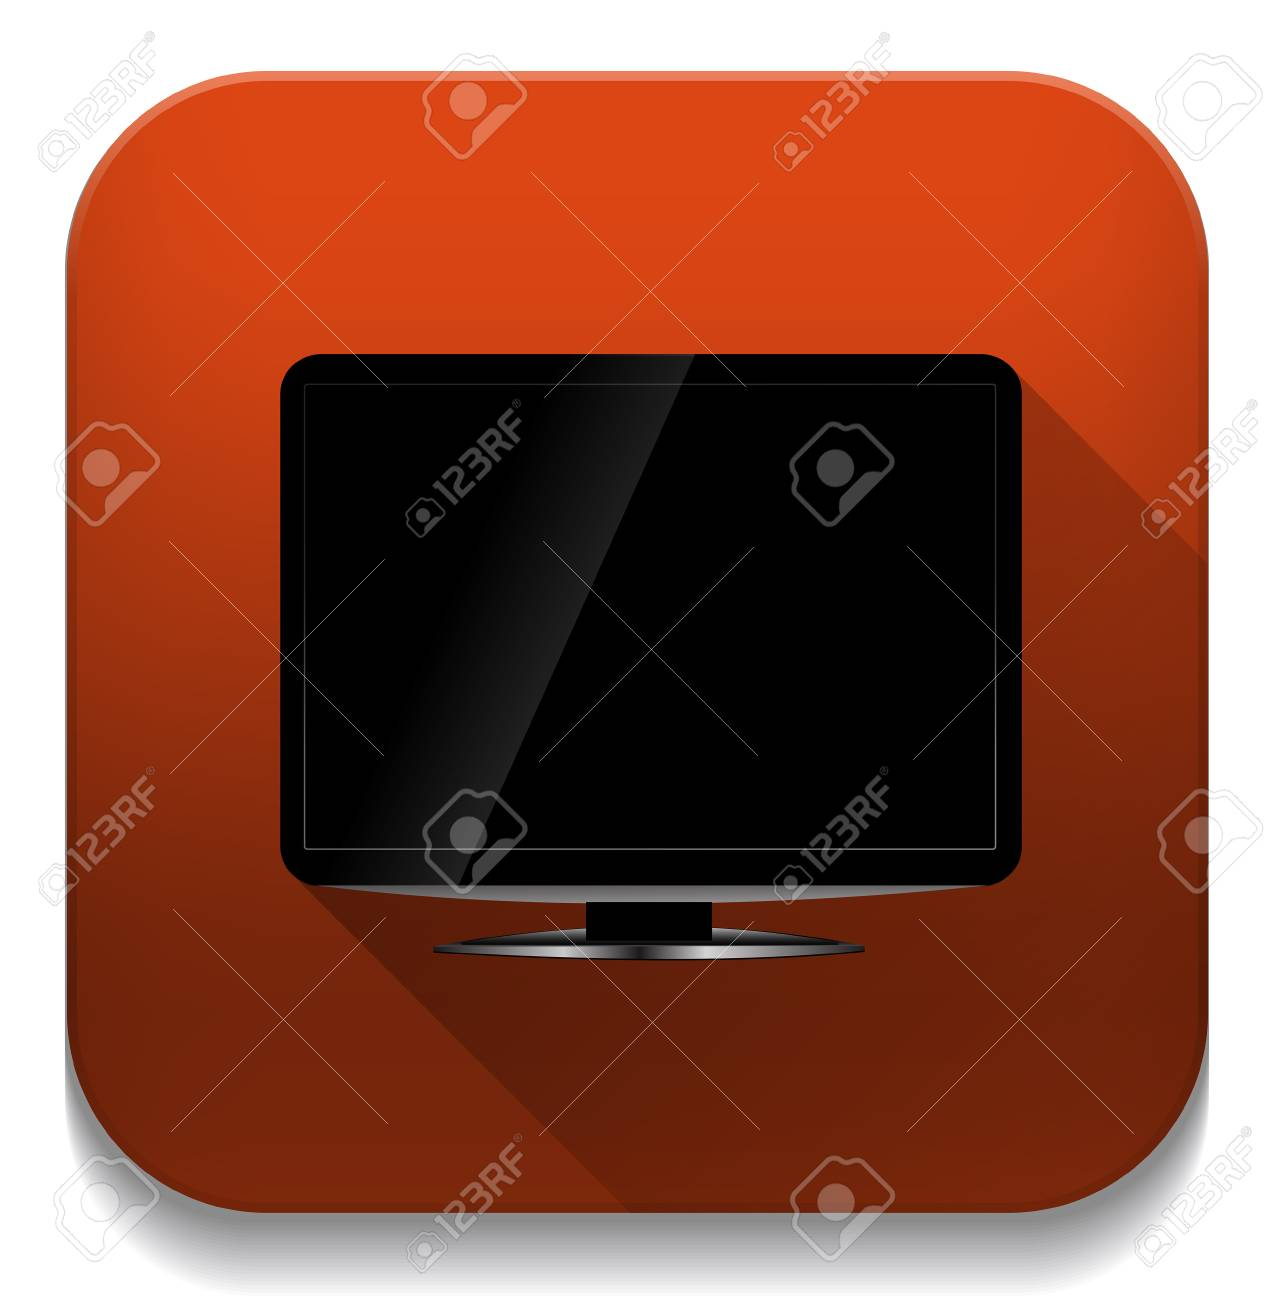 blank lcd tv template icon with long shadow over app button royalty